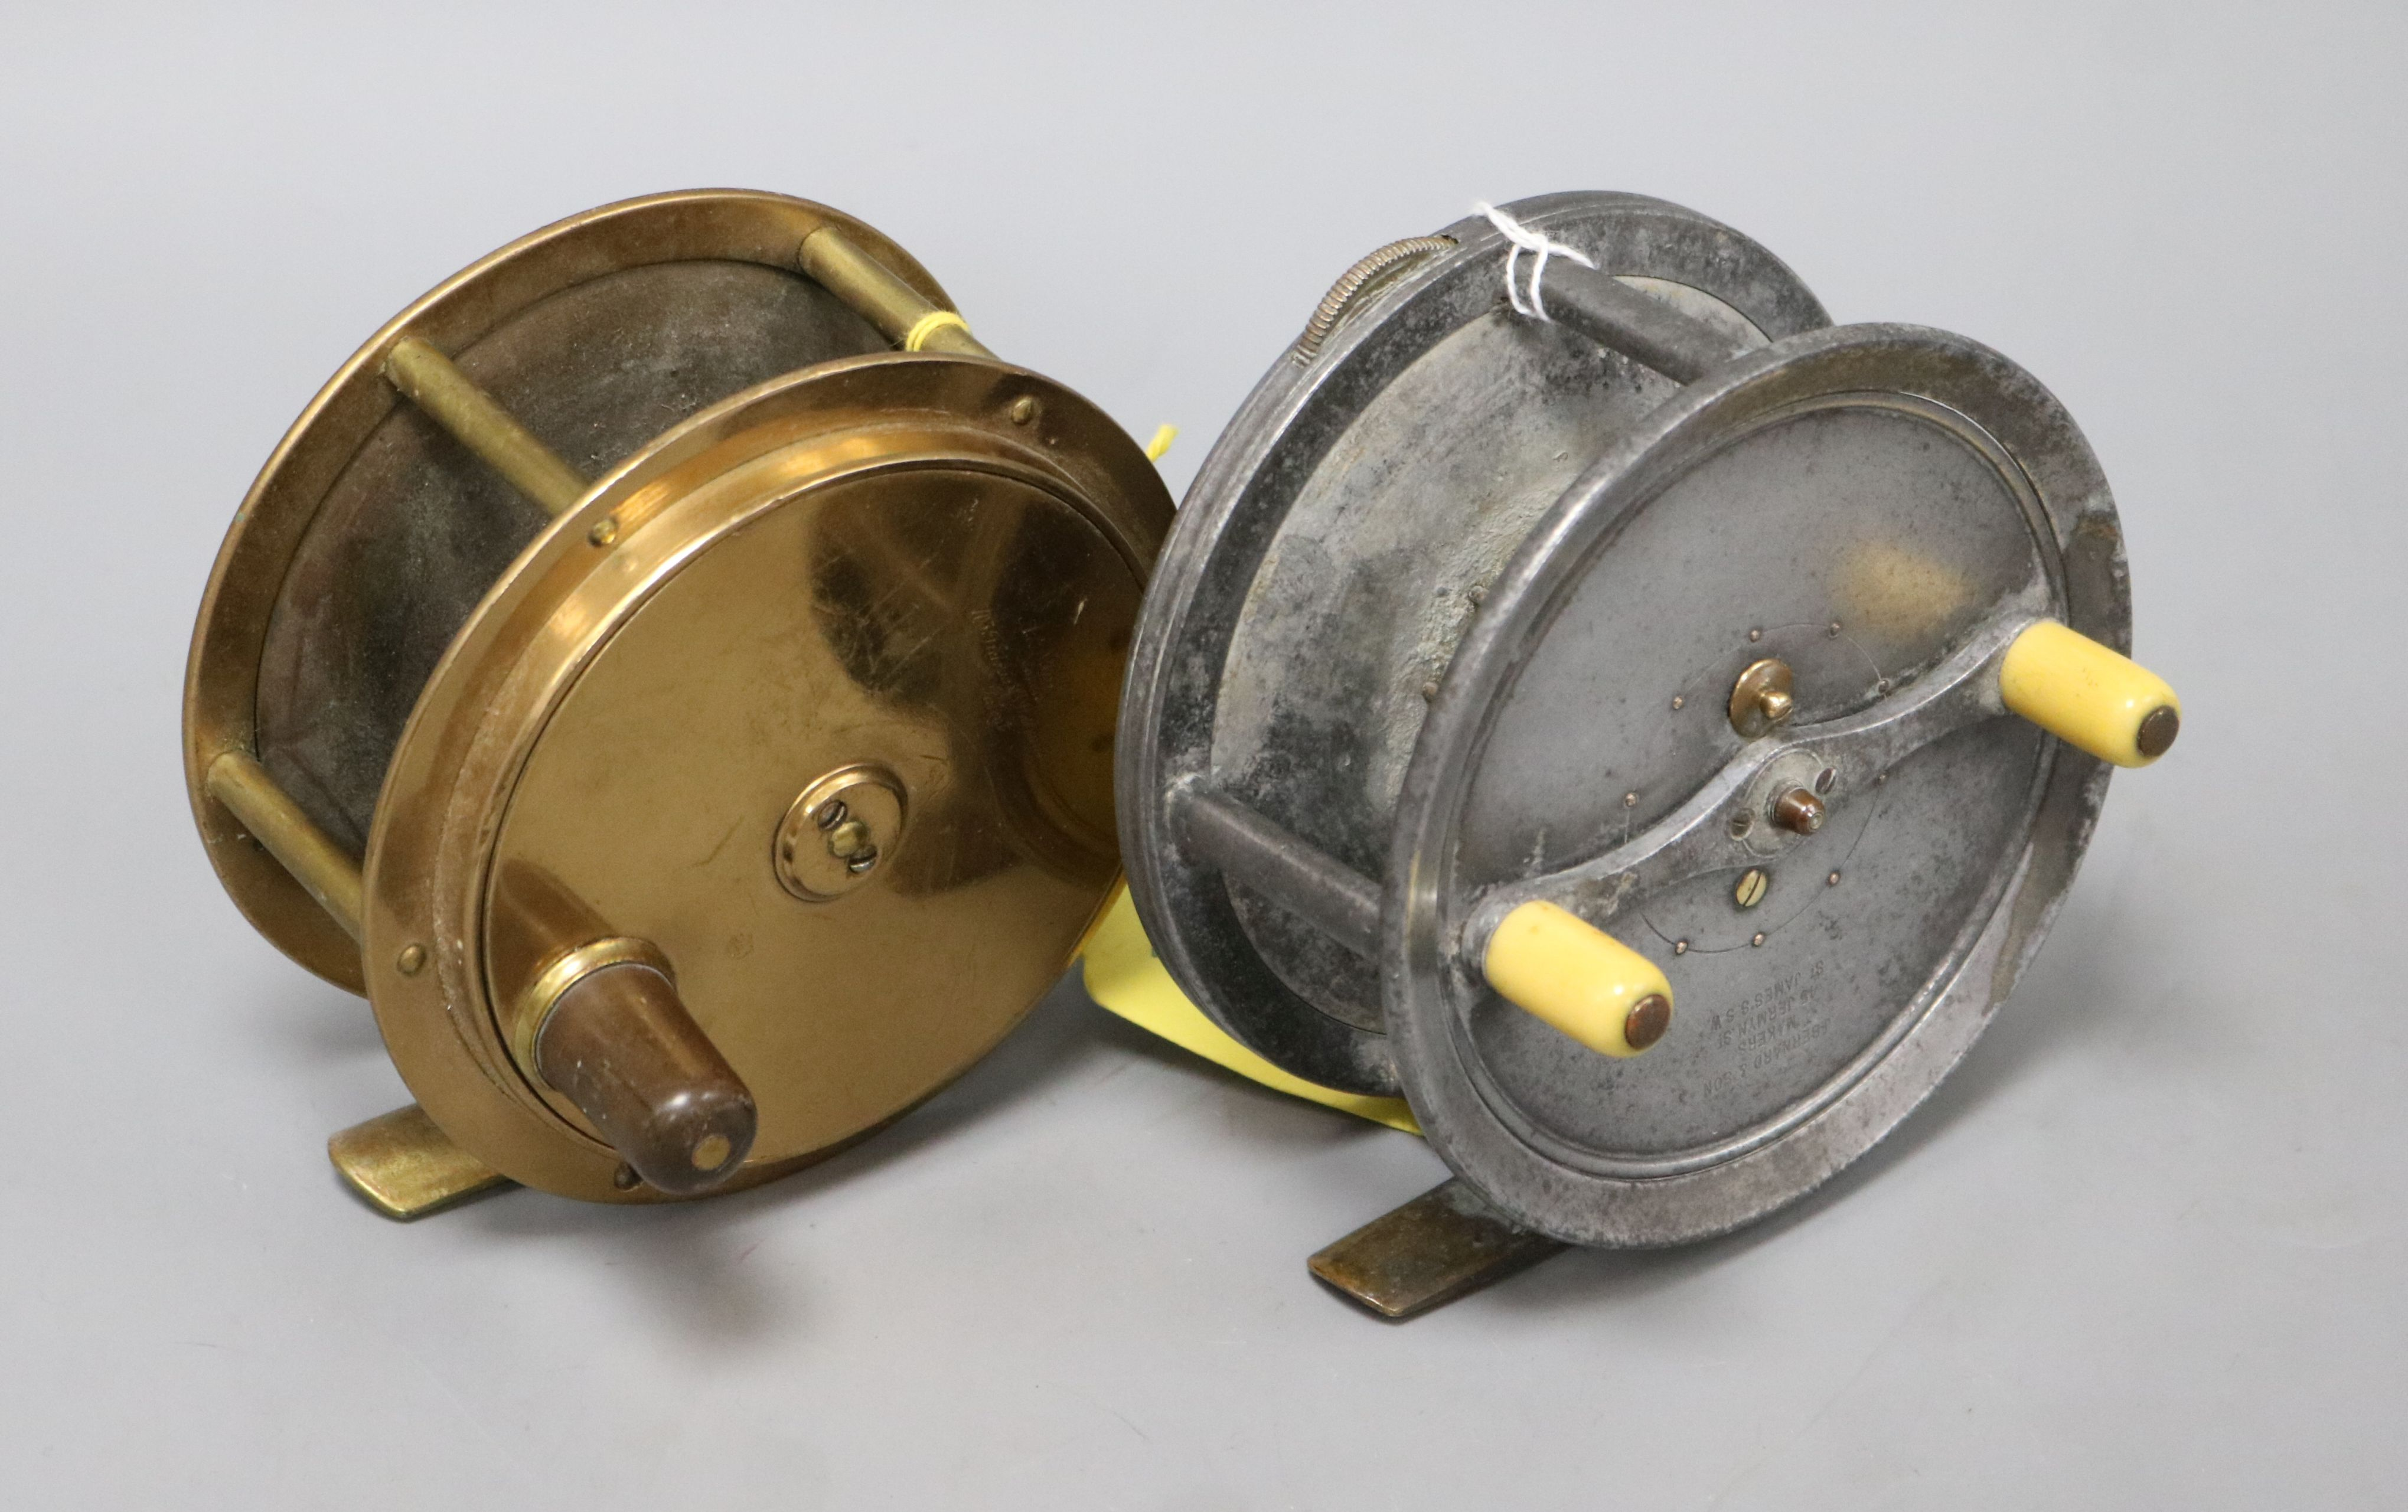 Lot 58 - J. Bernard and Son 4.5 inch fishing reel and an all brass reel by A and N CPL Westminster